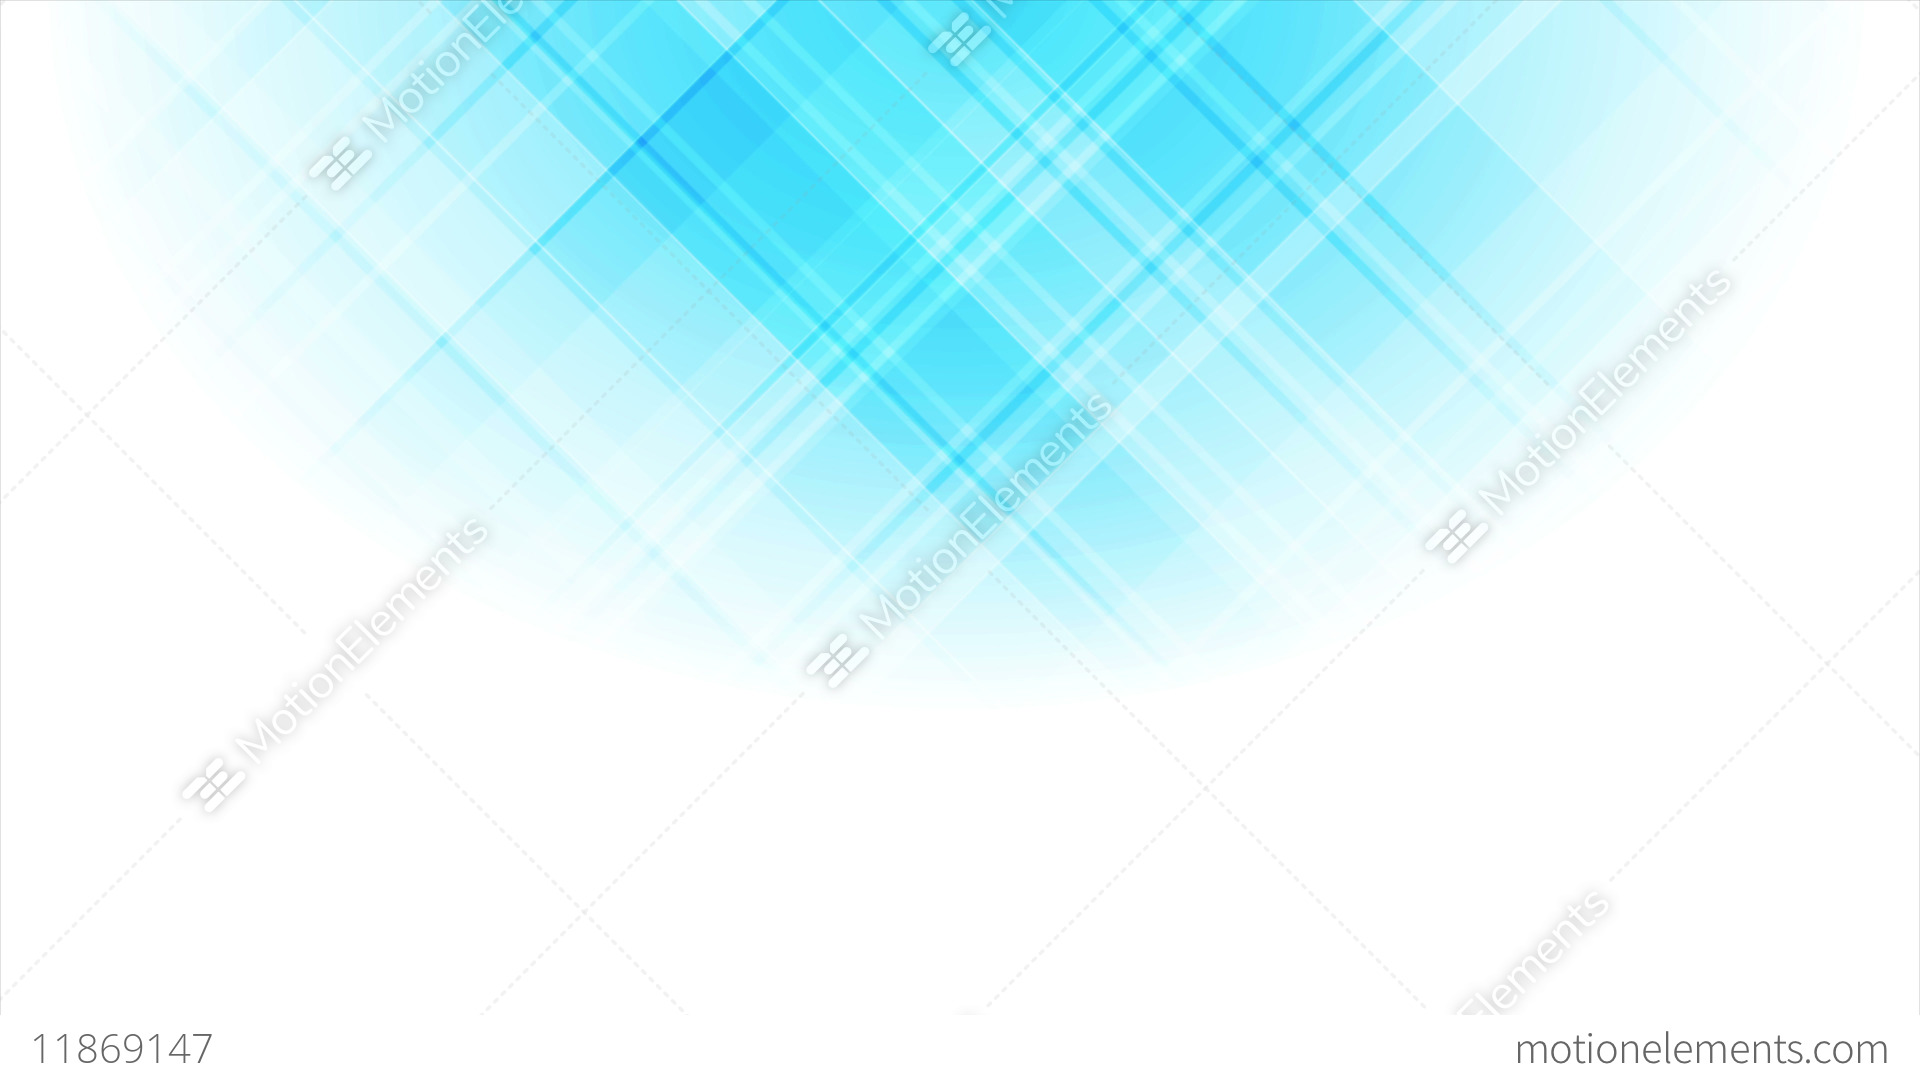 Blue Technology Abstract Background: Blue Technology Geometric Abstract Motion Background Stock